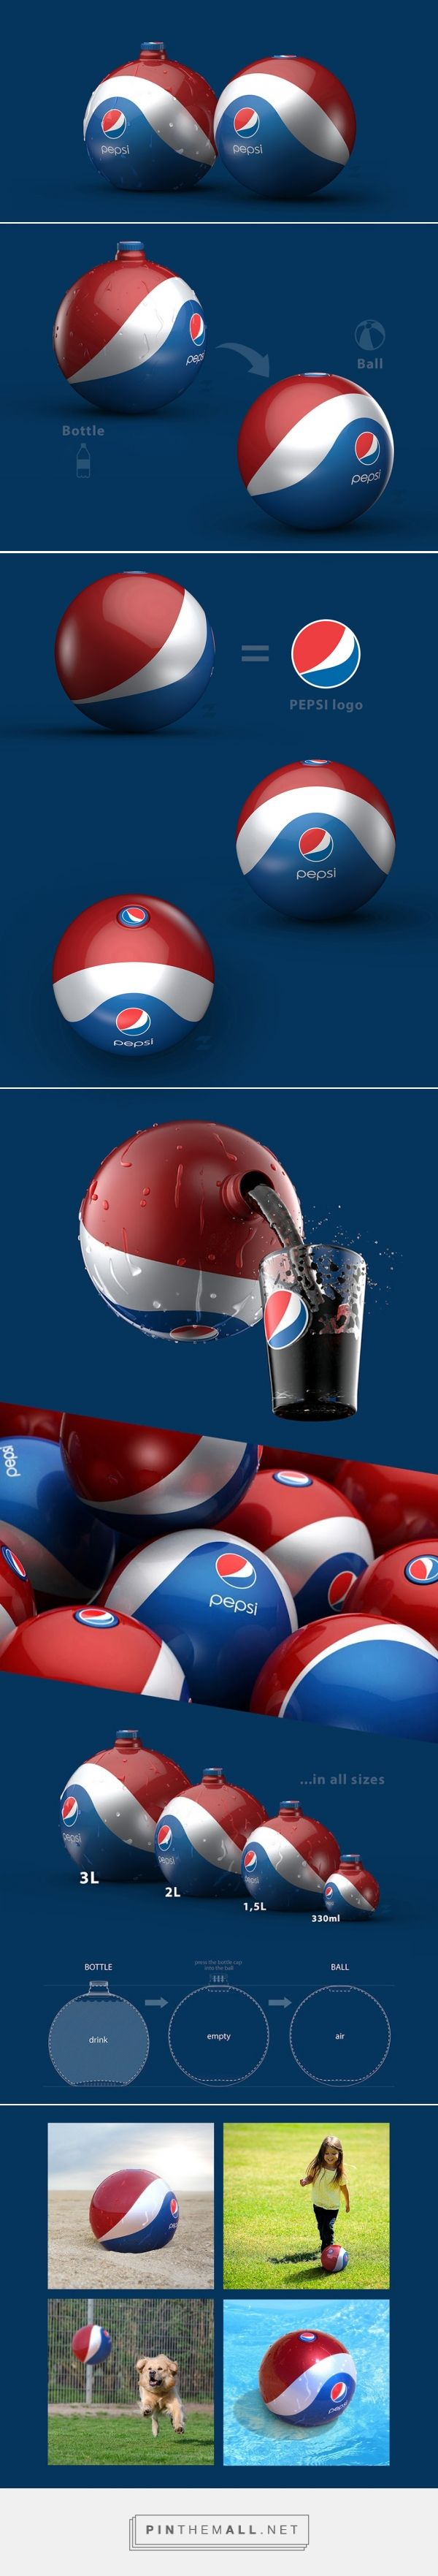 ‪‎Pepsi‬ Rubber ‪‎Ball‬ / ‪‎Bottle‬ ‪Packaging‬ ‪Design‬ ‪‎Concept‬ by Tomislav Zvonaric (‪‎Croatia‬) - http://www.packagingoftheworld.com/2016/04/pepsi-rubber-ball-bottle-concept.html - created via https://pinthemall.net